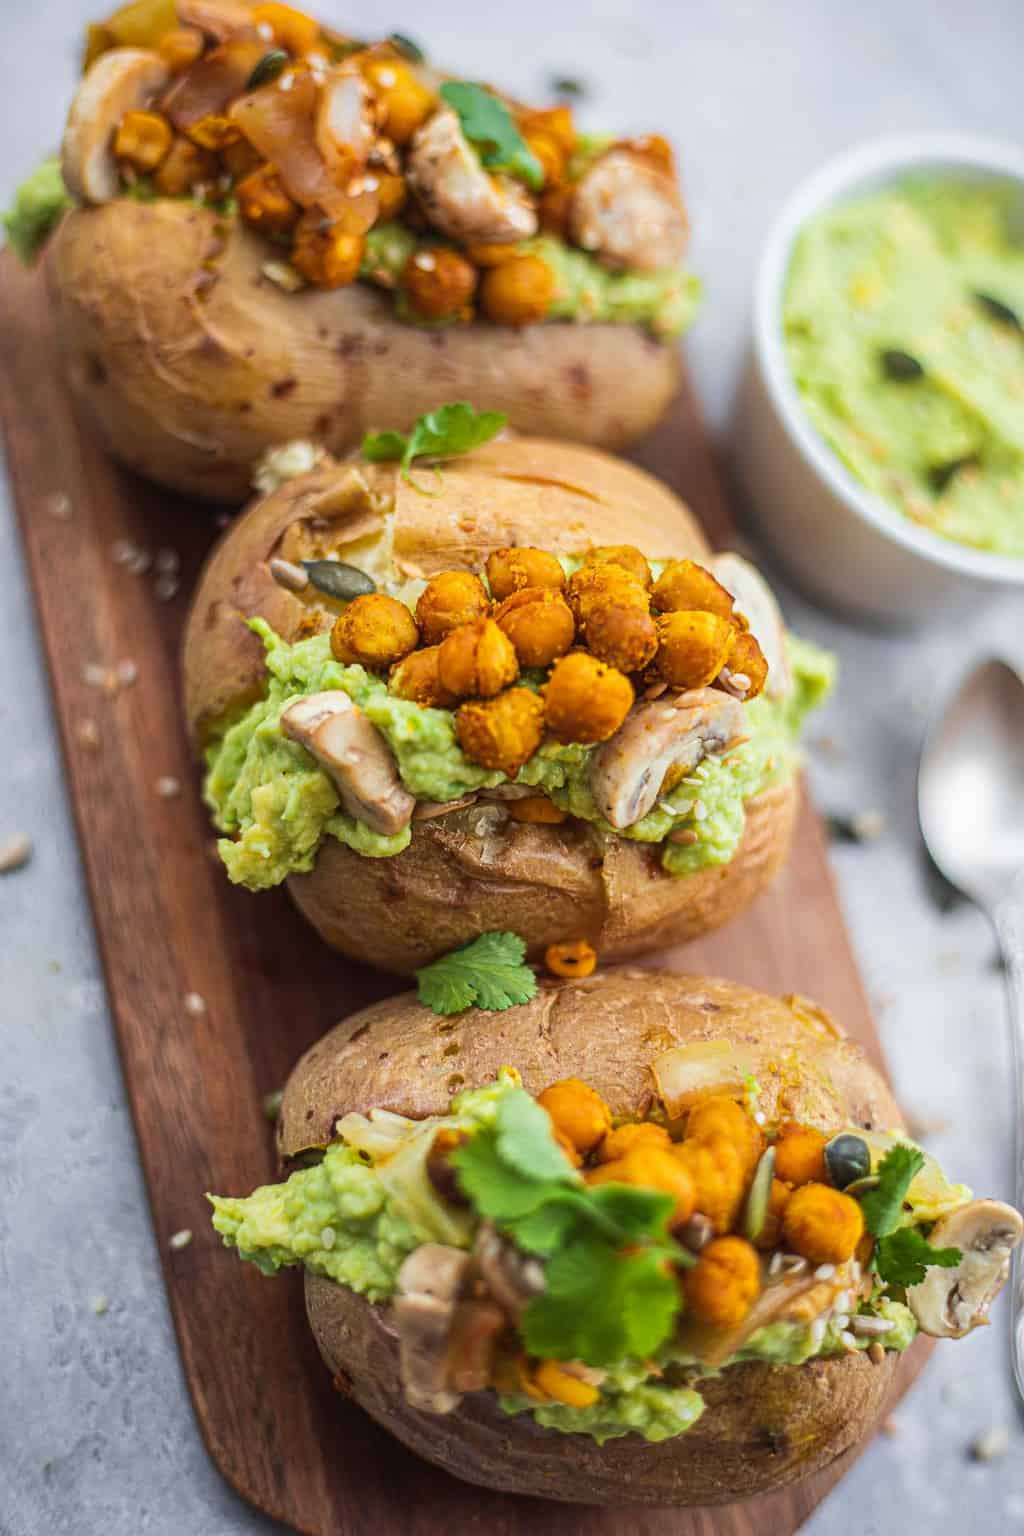 Vegan stuffed baked potatoes on a chopping board